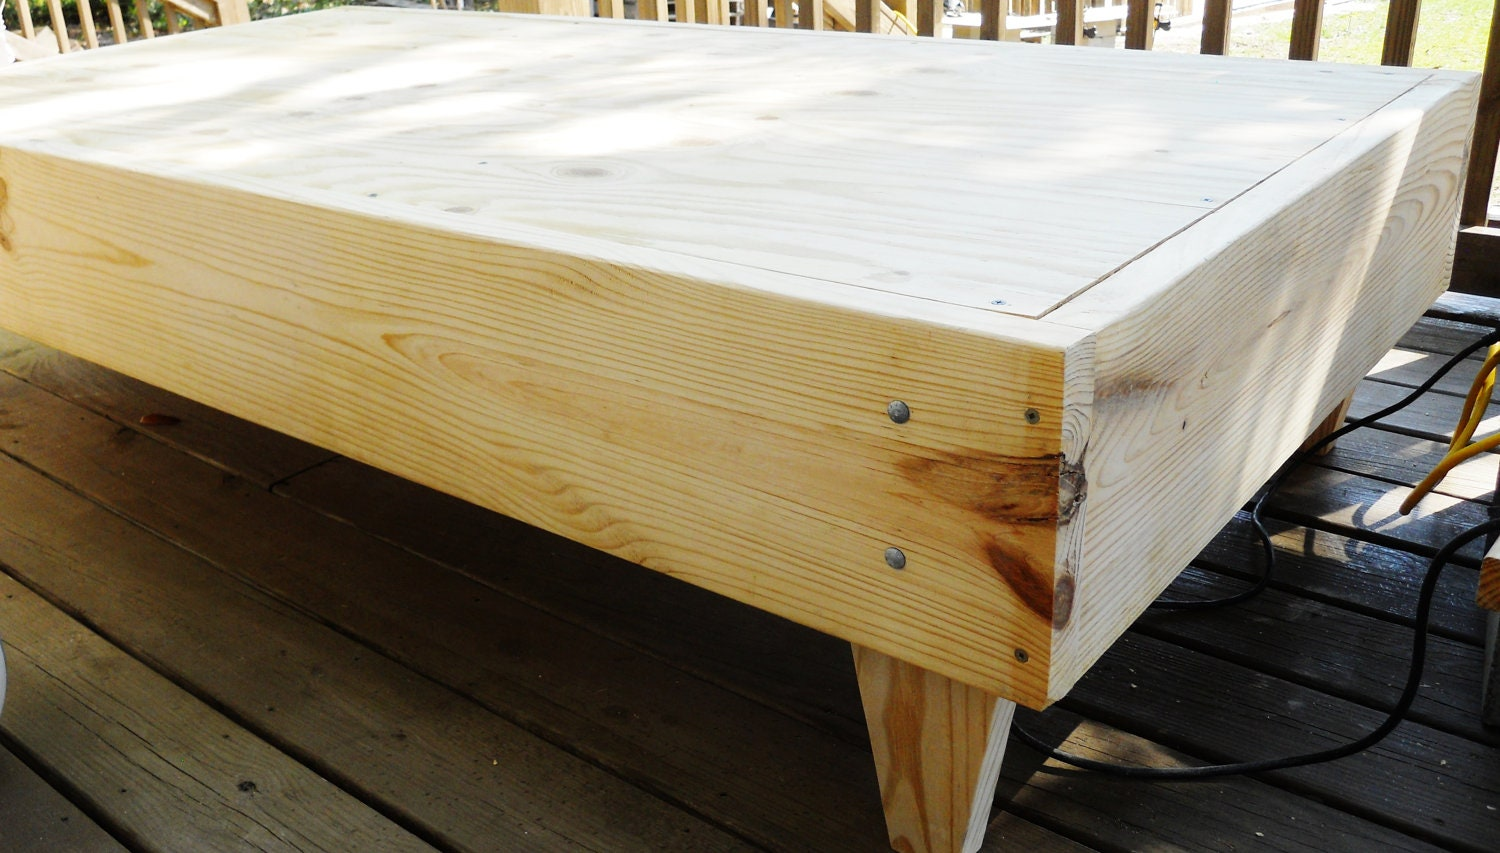 Custom Made platform bed Twin size by DavidnVicki on Etsy